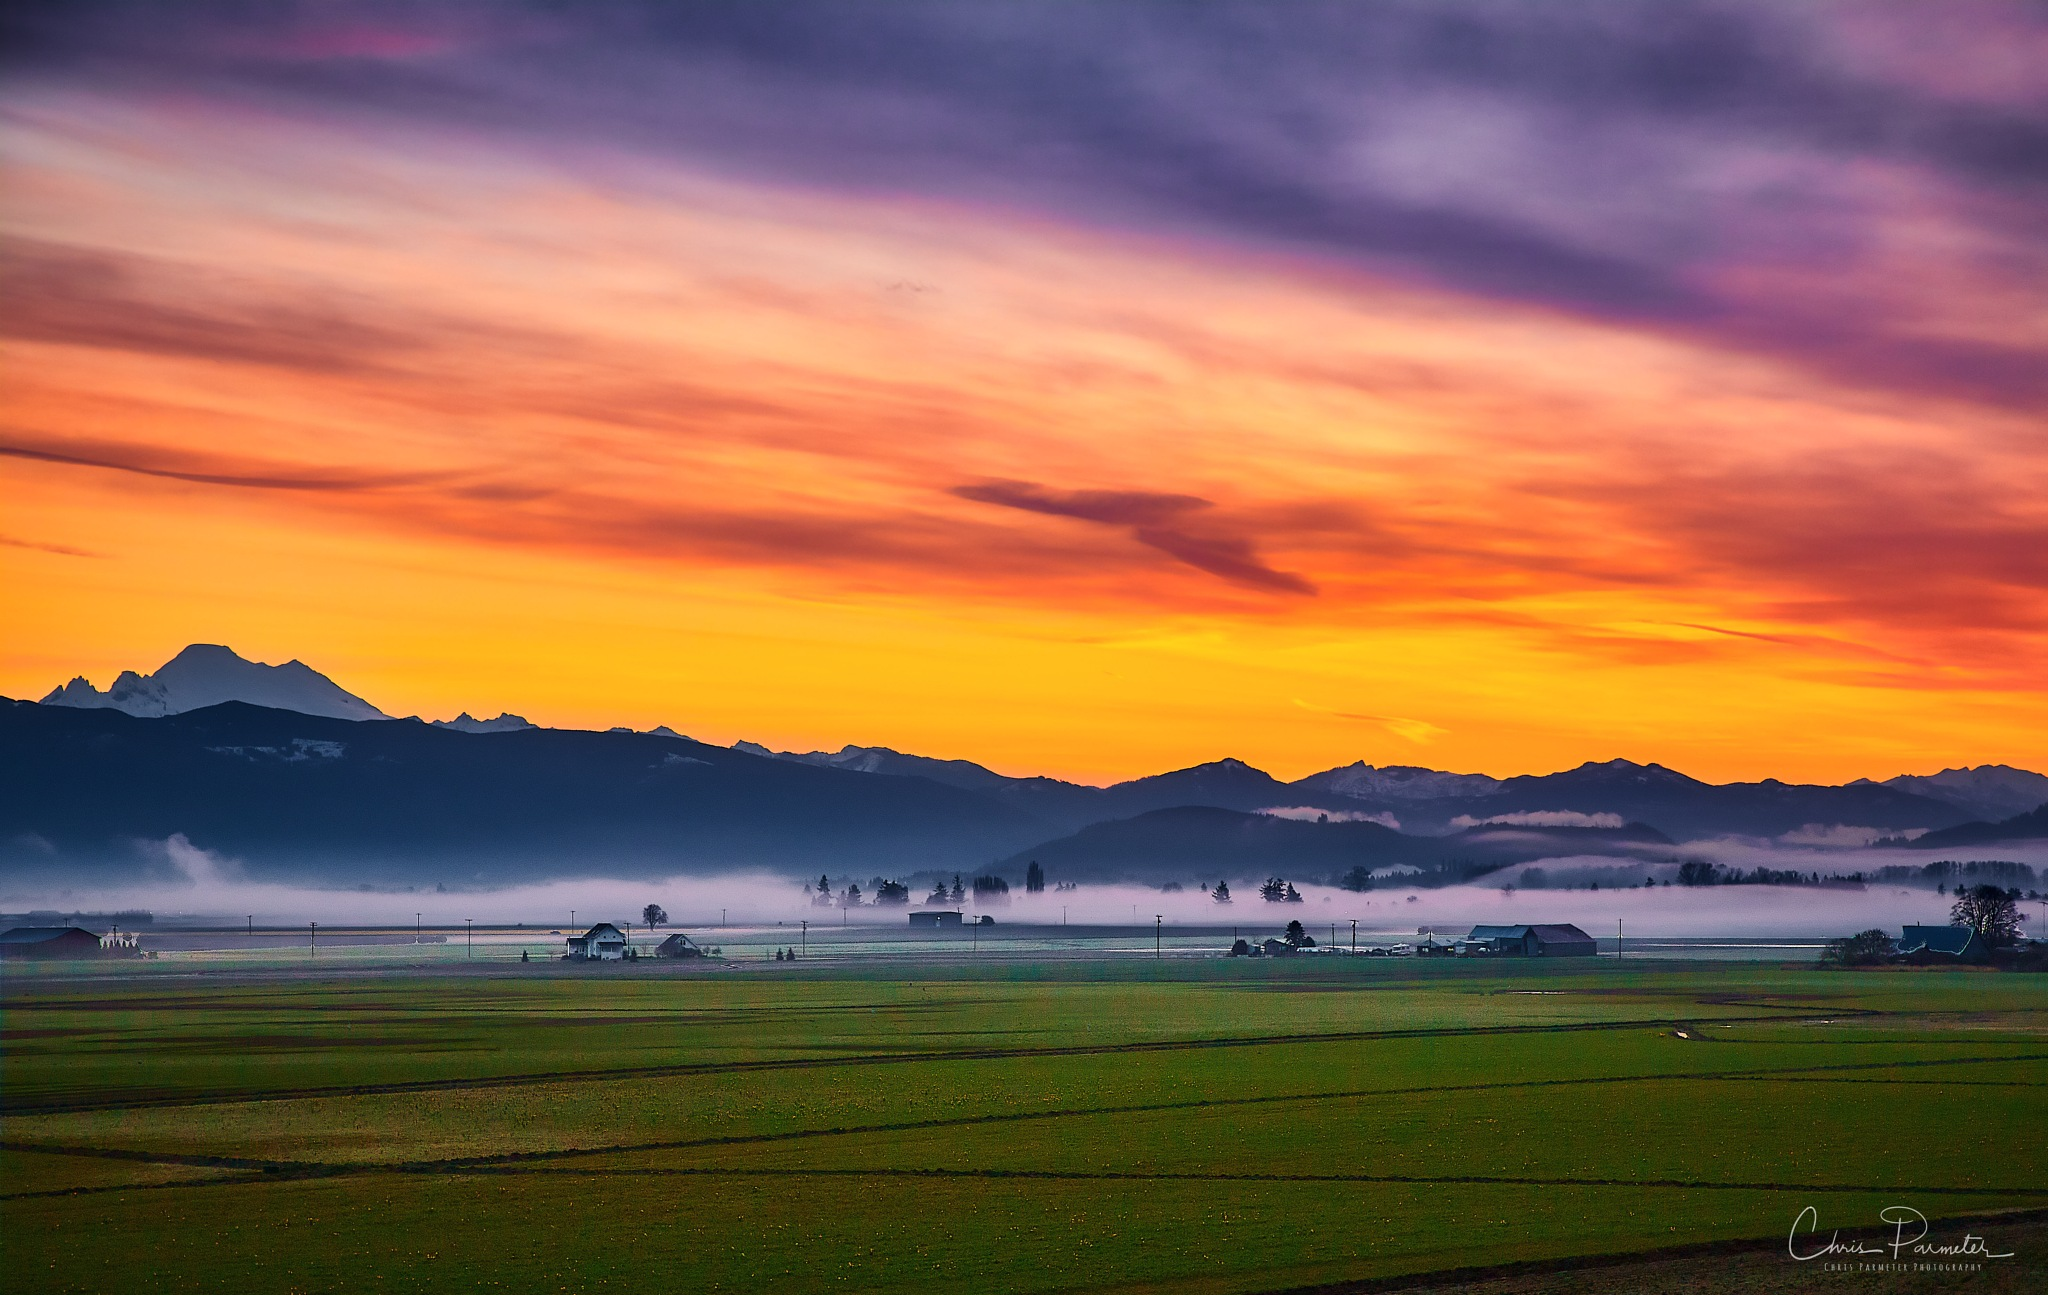 Sunrise in Skagit Valley by Chris Parmeter